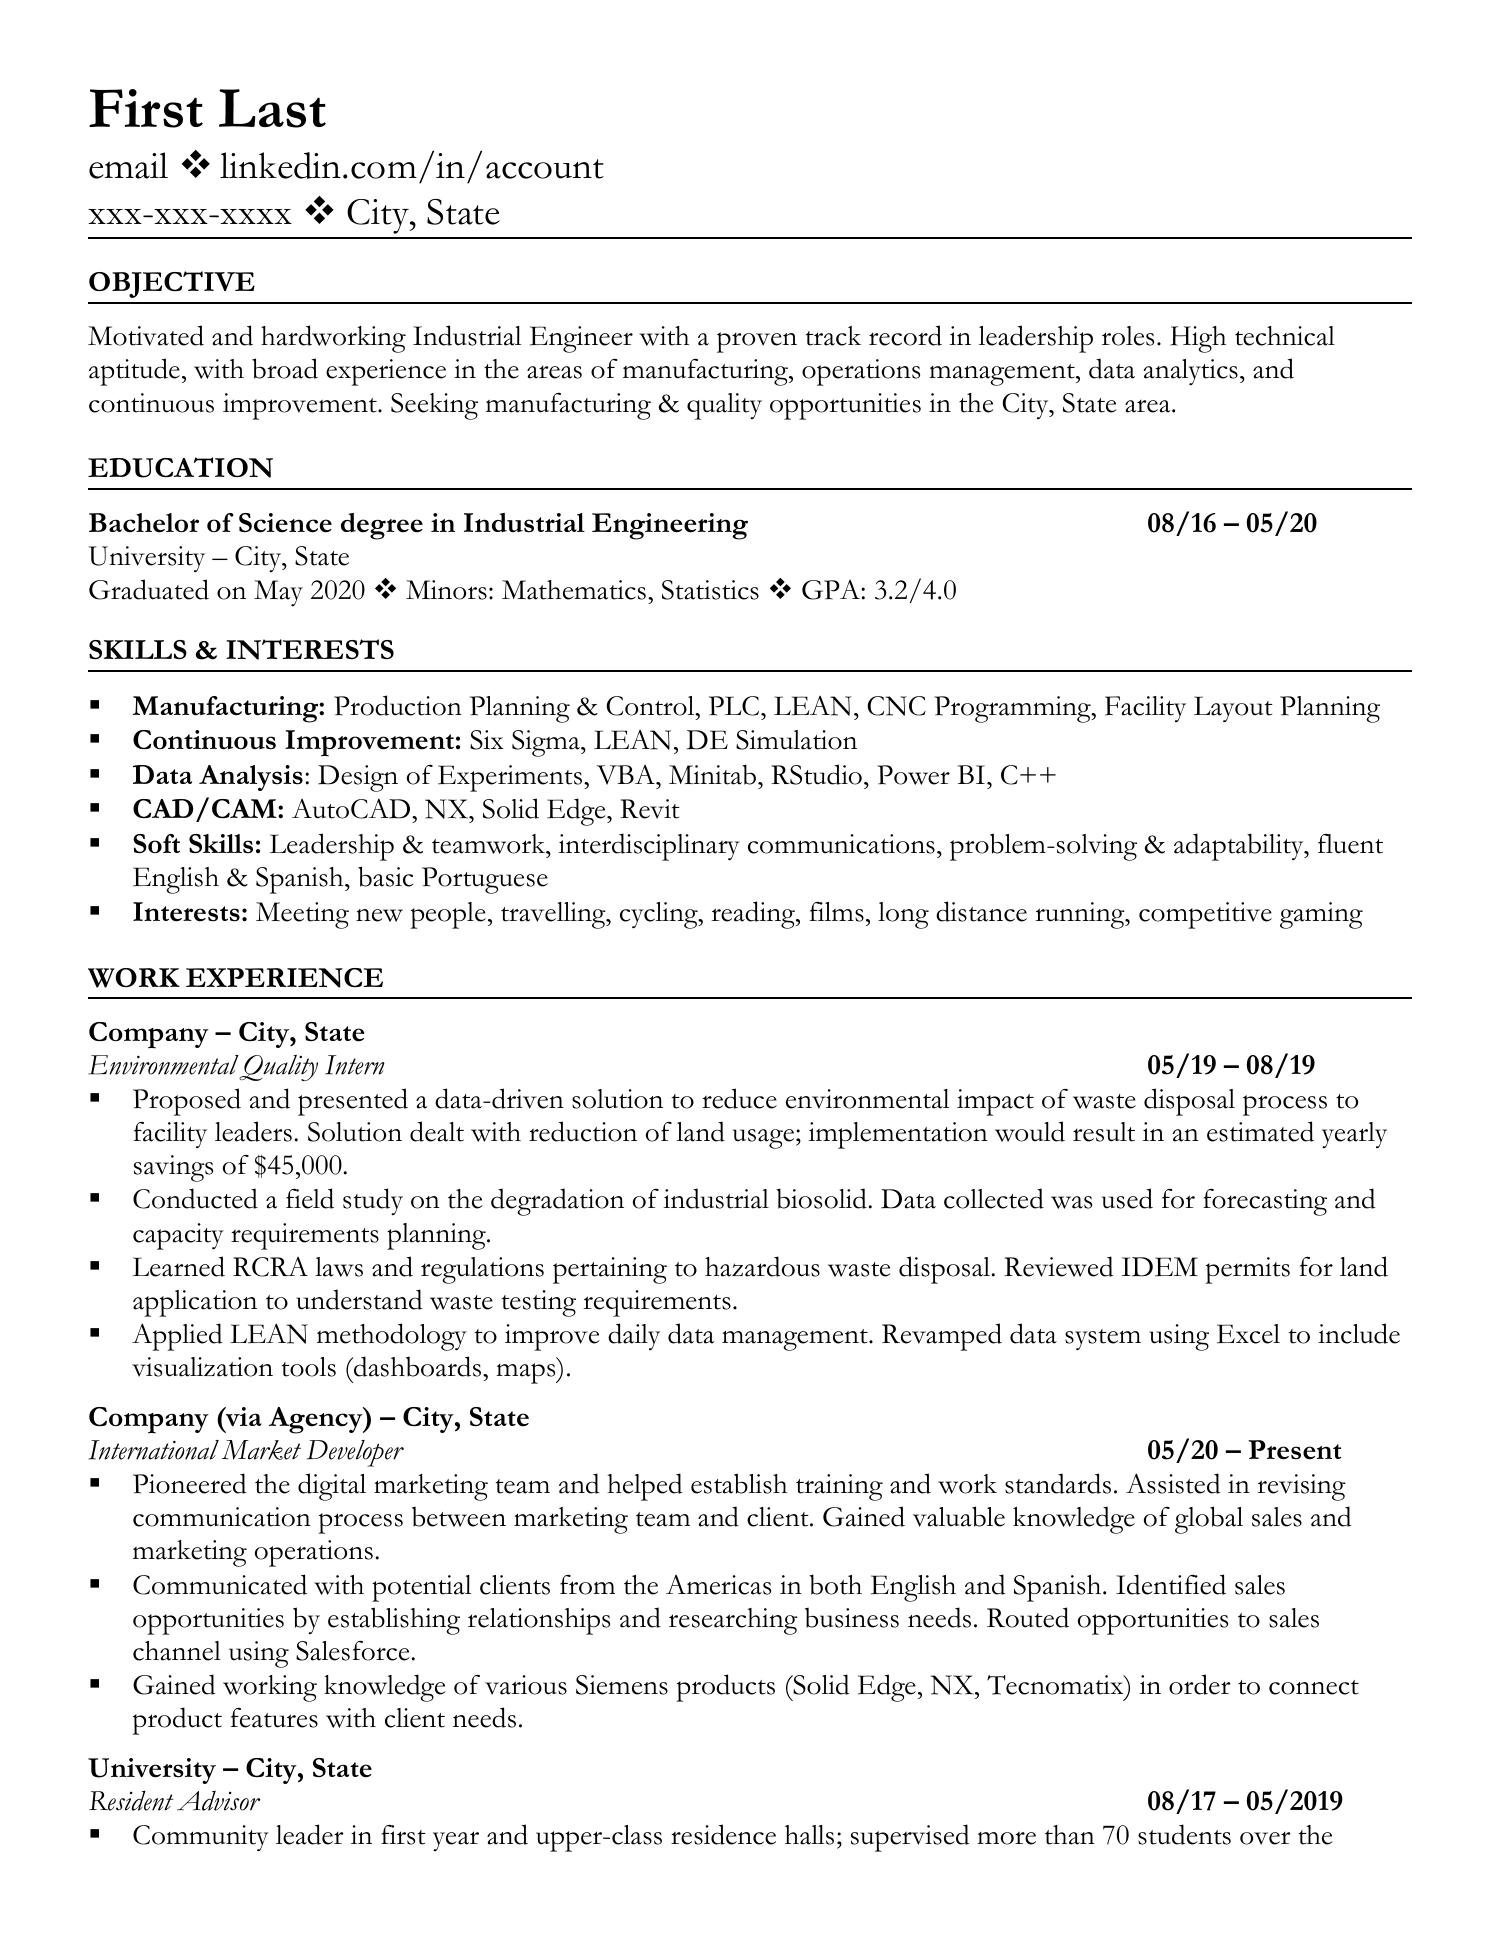 reddit resume docdroid interests sample for welder position senior laboratory technician Resume Resume Interests Reddit